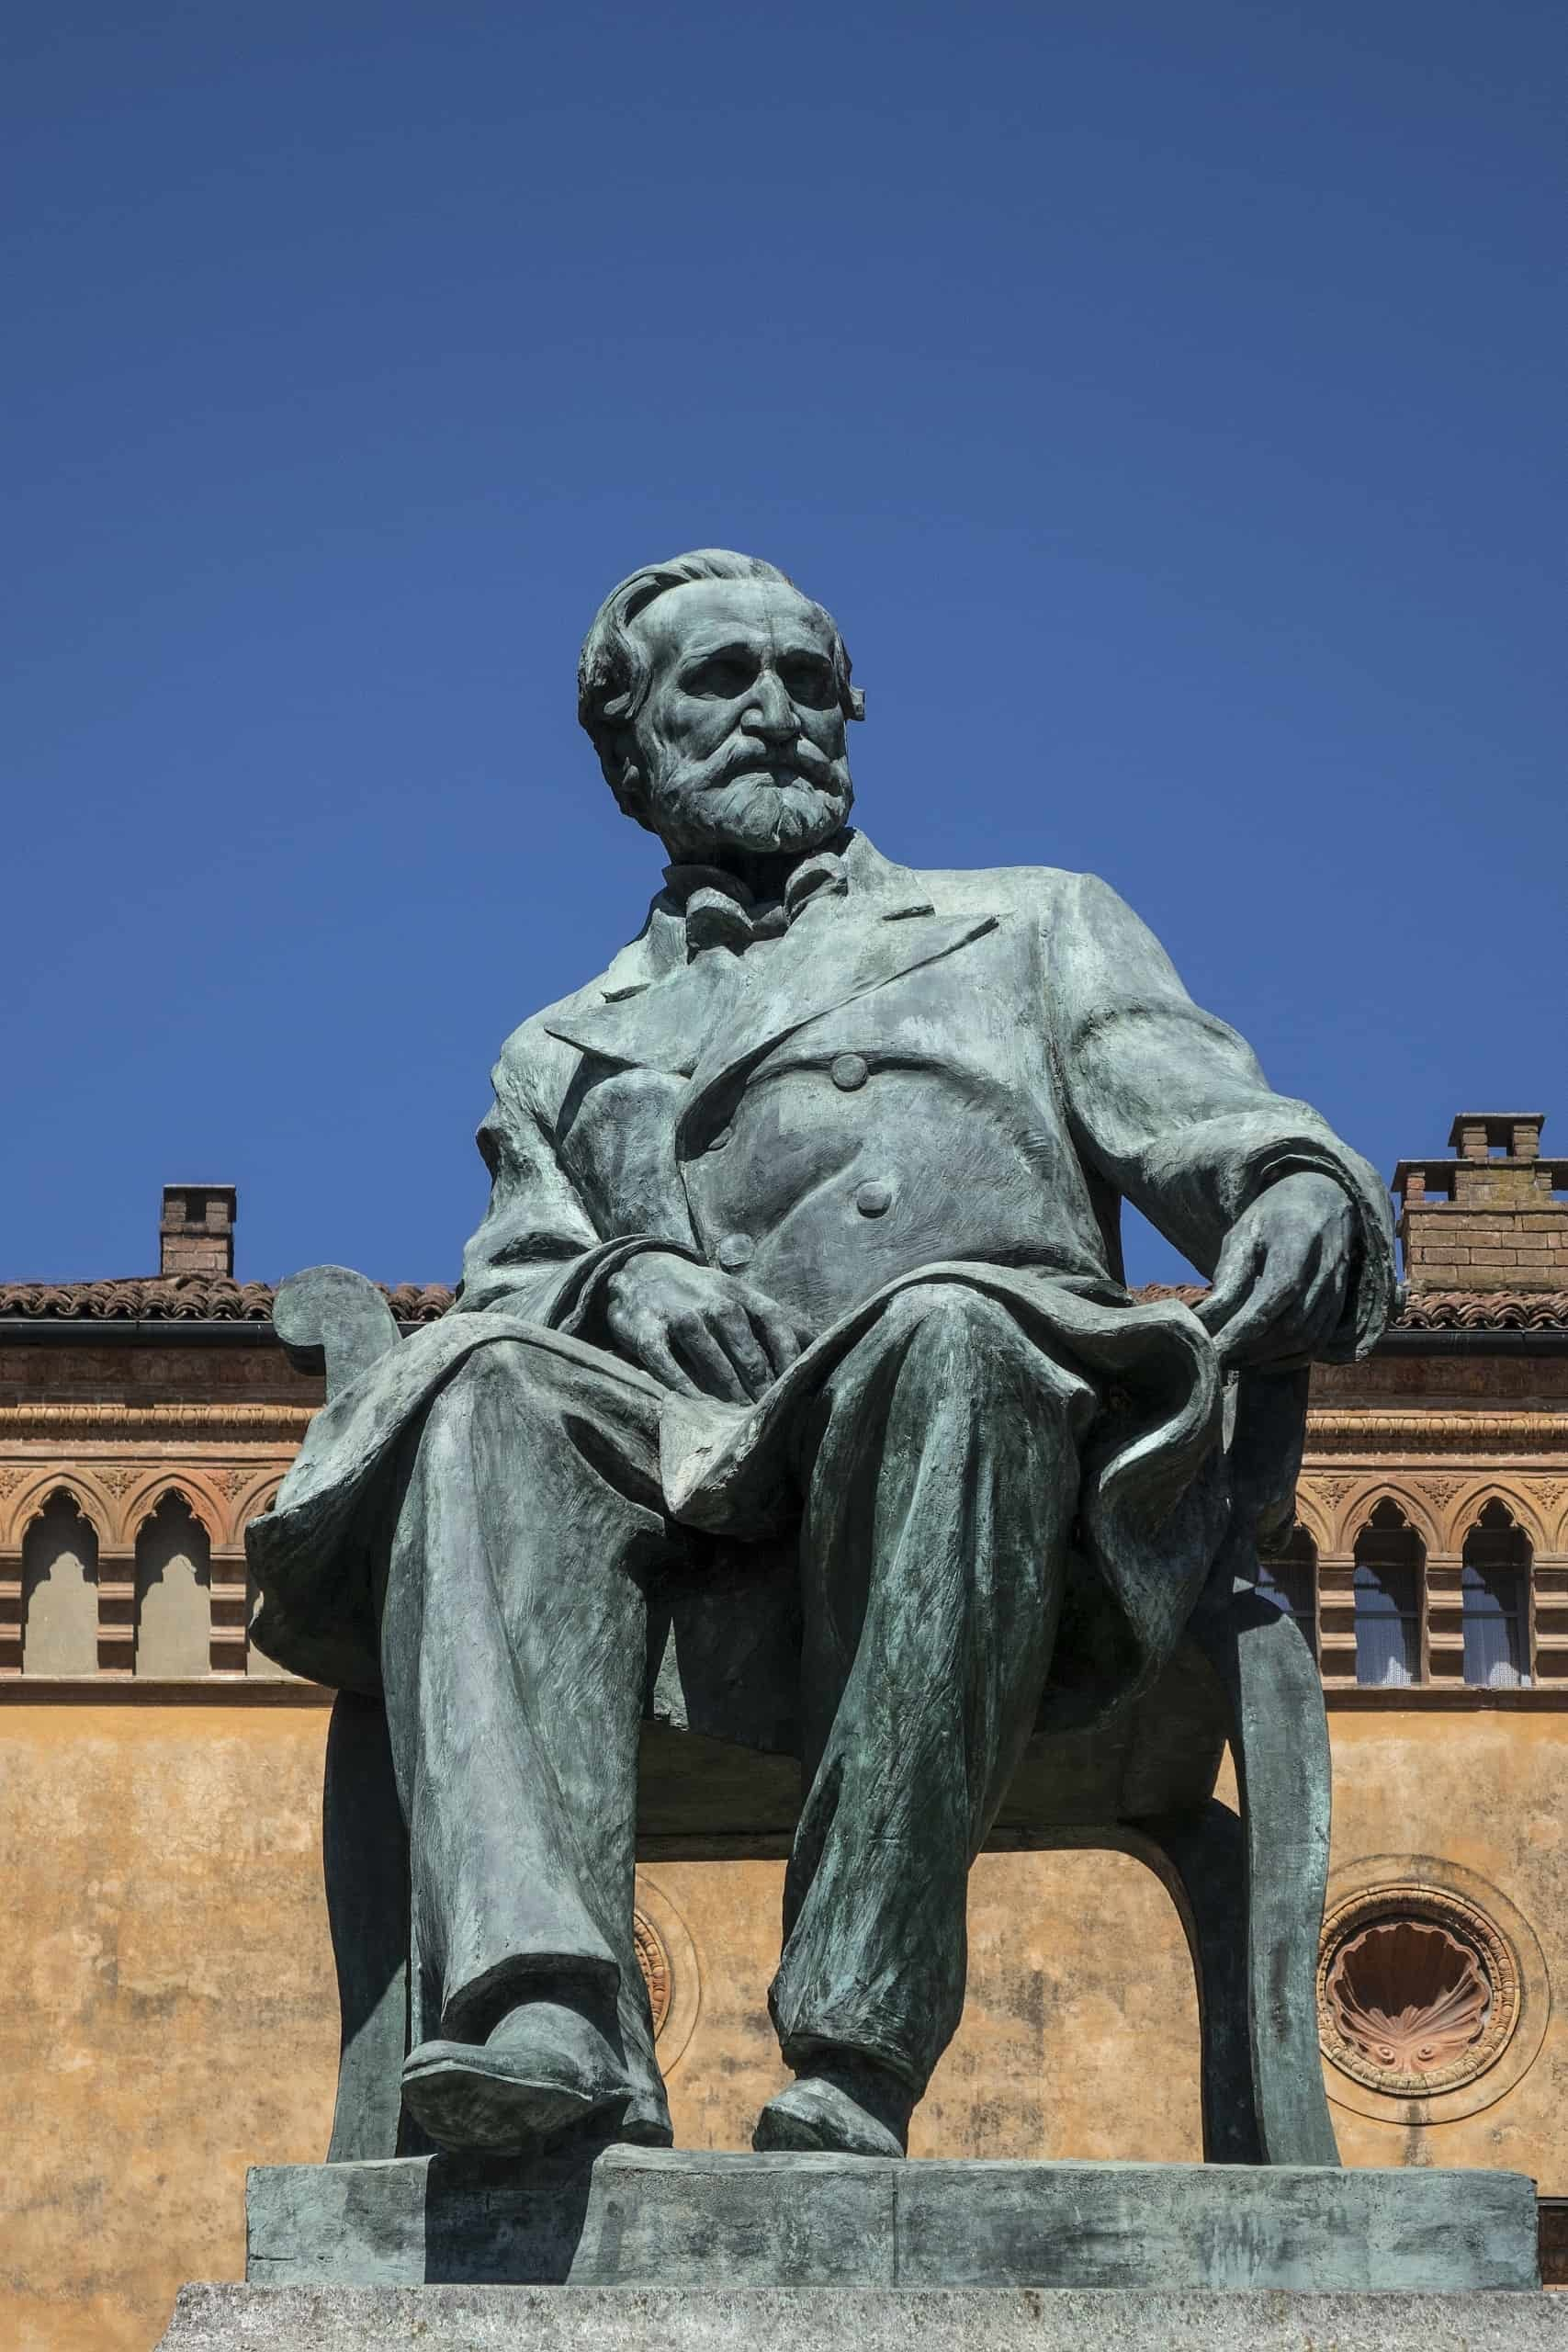 Italian Composer Giuseppe Verdi is famous for Italian Opera. Music Trips to Italy are often associated with Verdi.